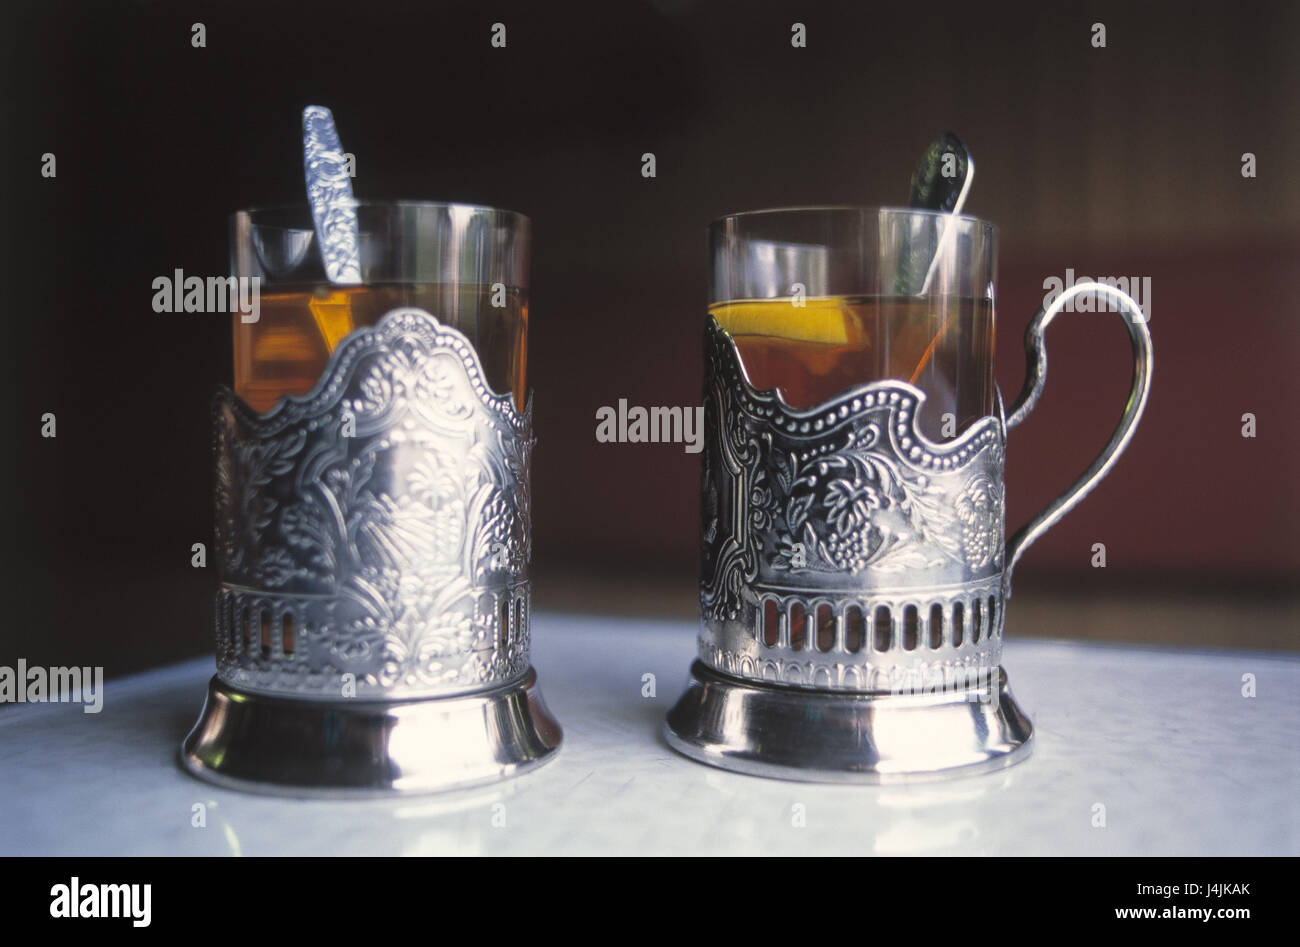 Russia, tea glasses, holders, silver CIS, tea, glasses, drinks, typically, tradition, thirst, dishes, teaspoon, - Stock Image